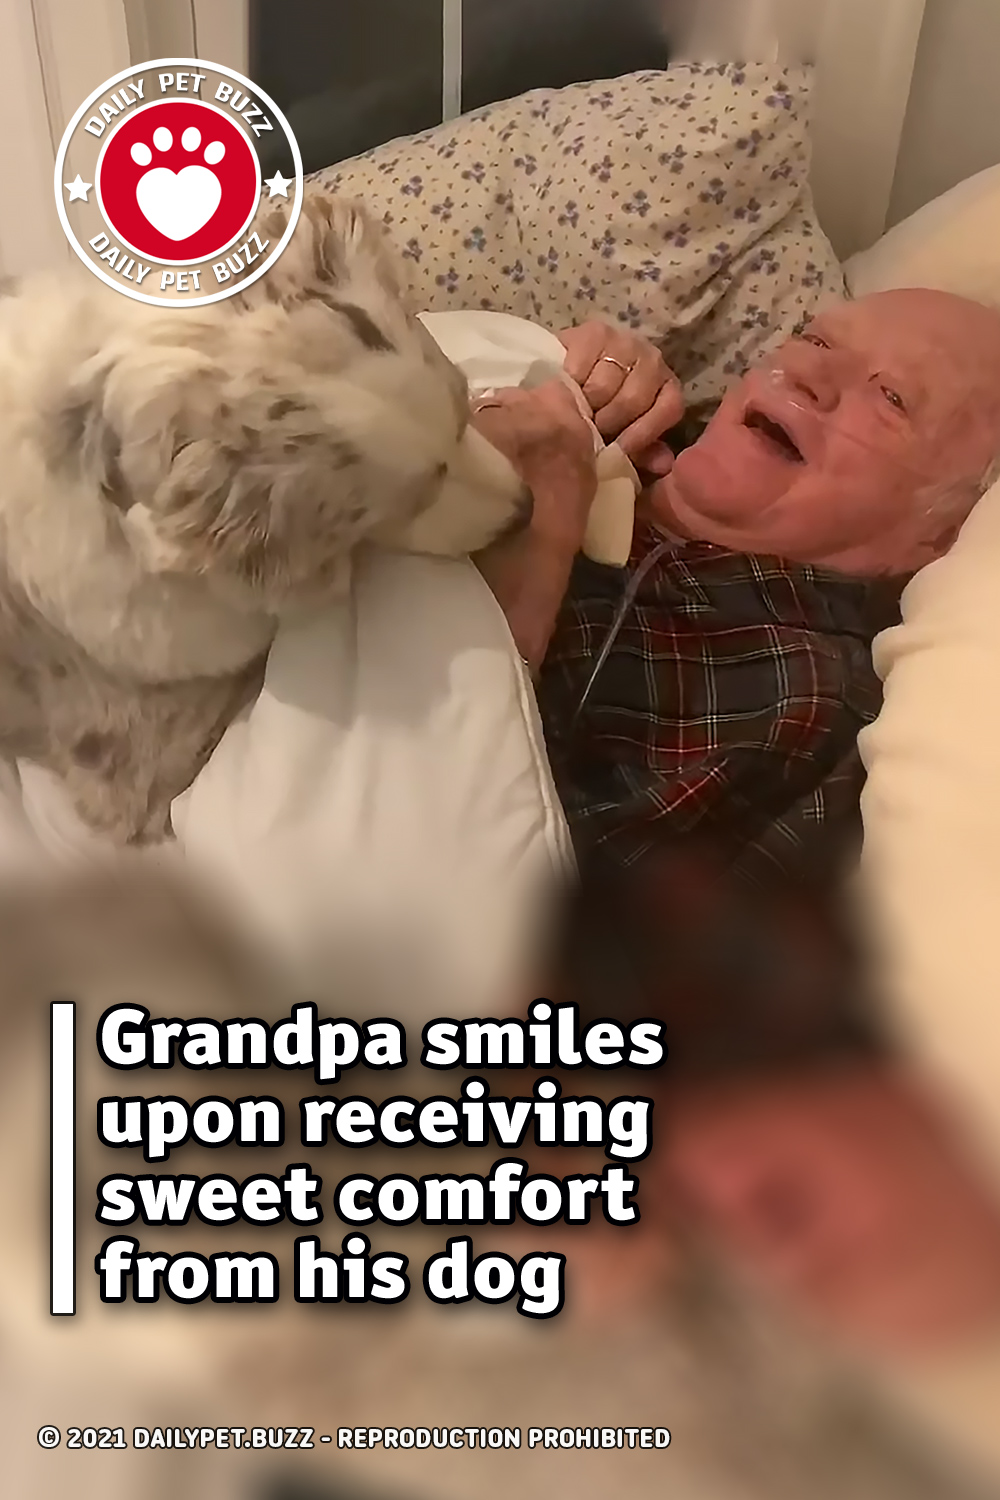 Grandpa smiles upon receiving sweet comfort from his dog